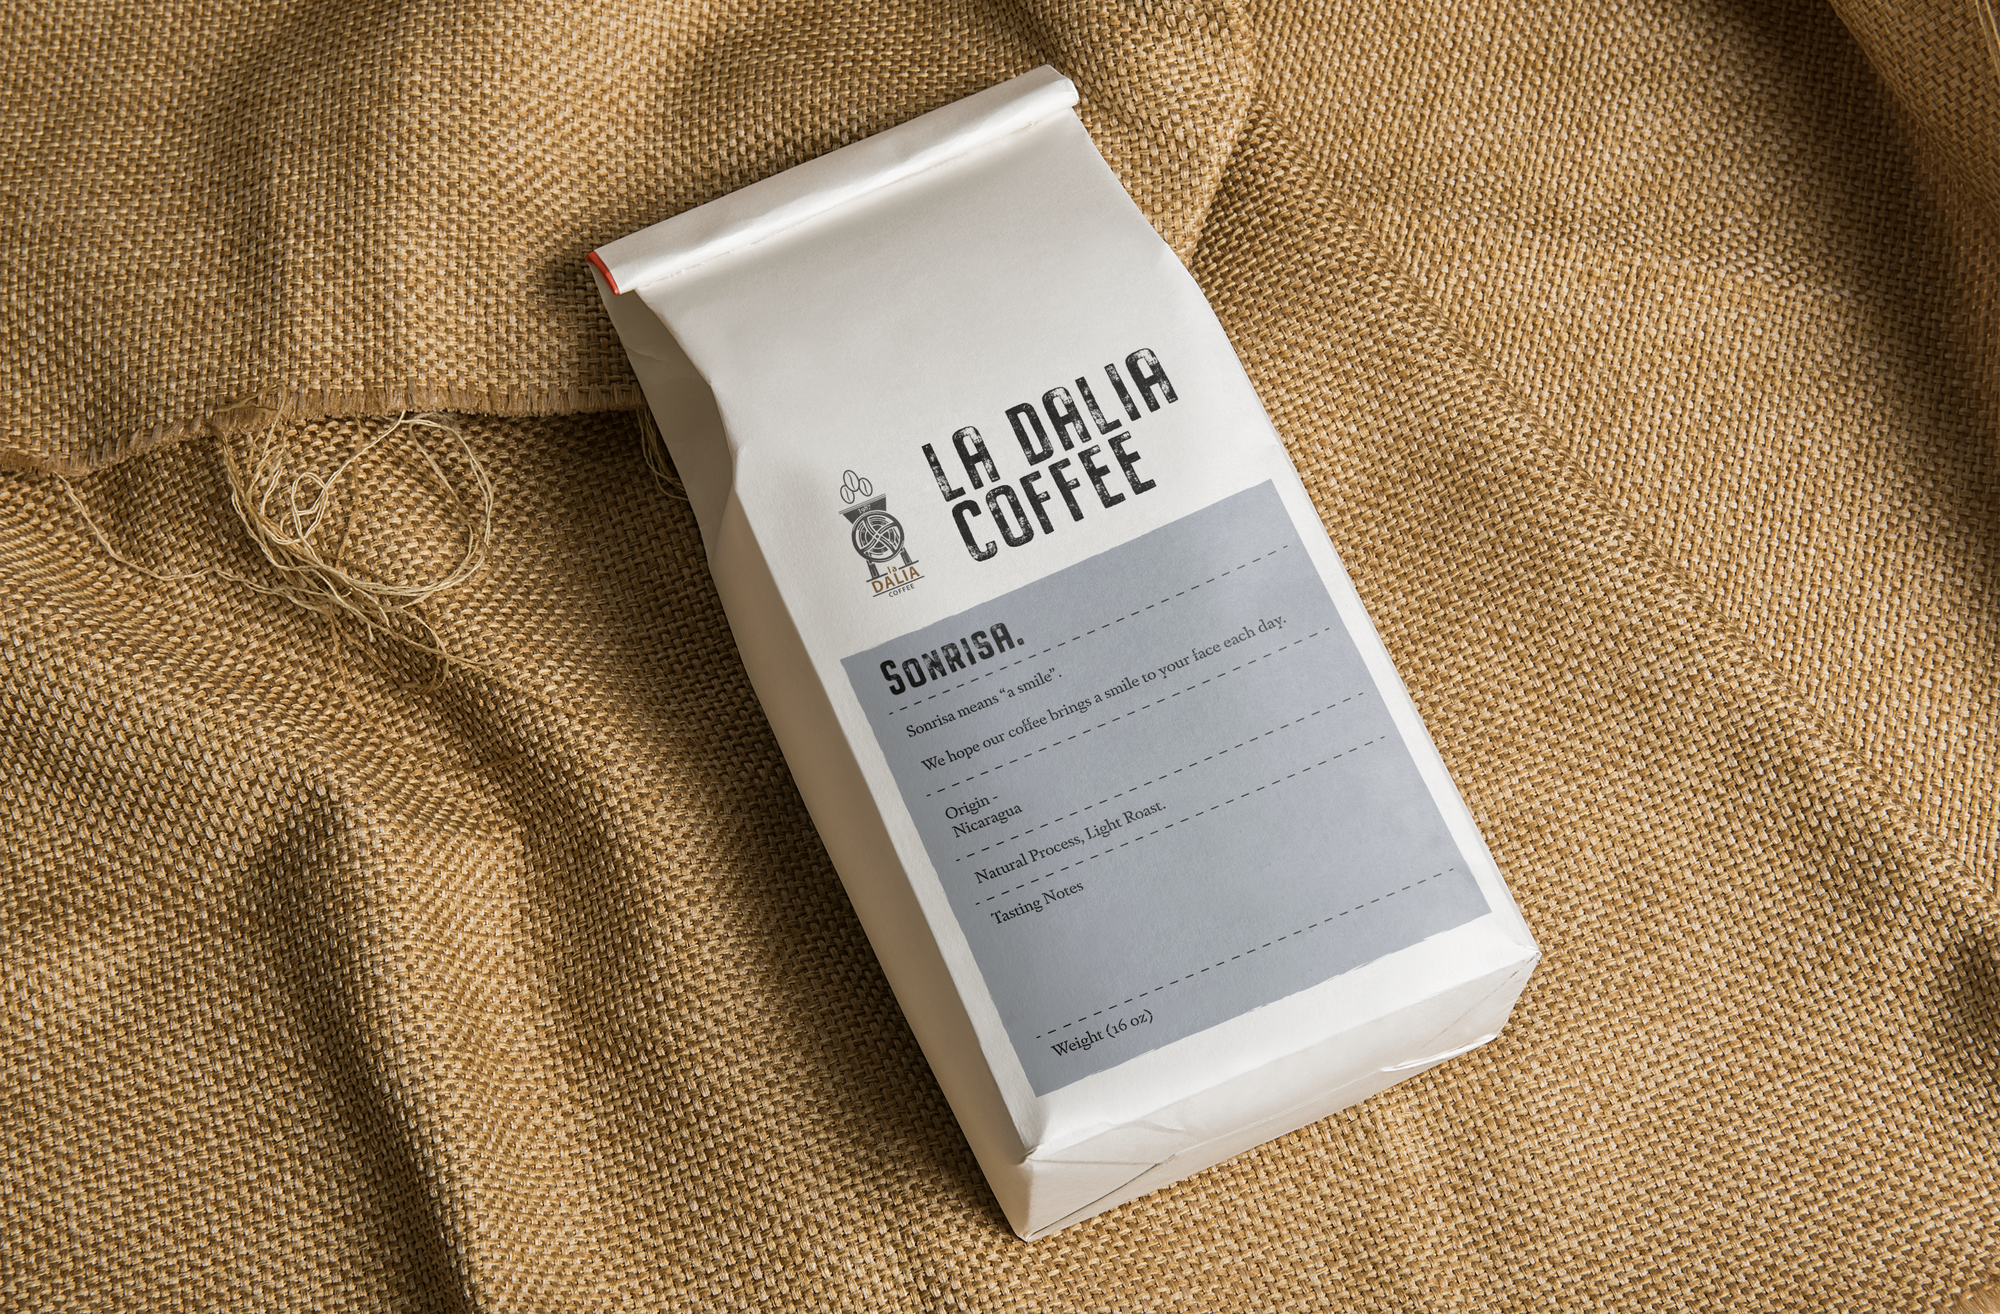 Sonrisa - Light Roast, Natural Process